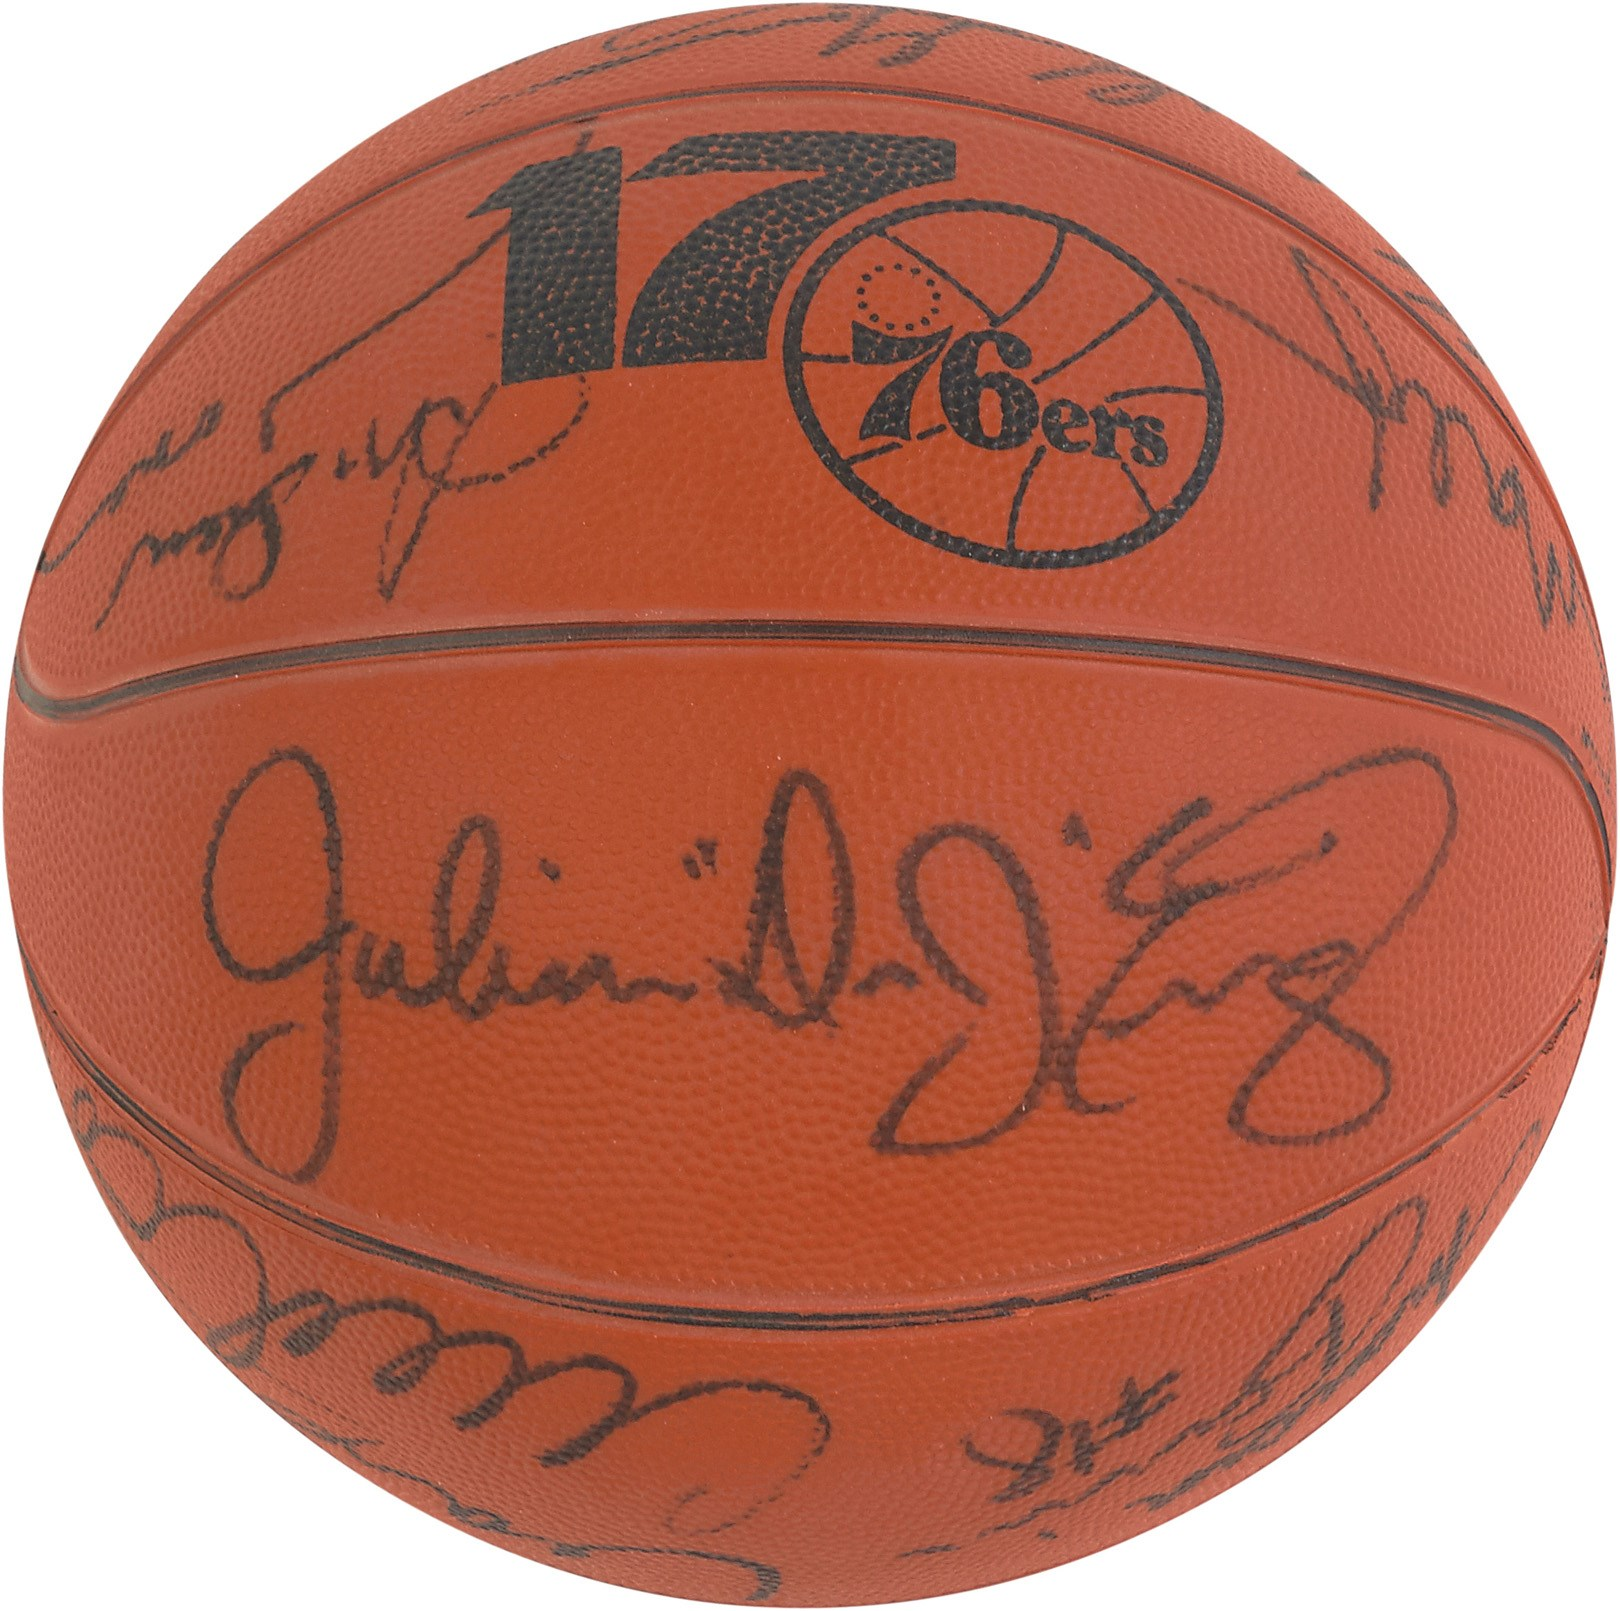 1982-83 World Championship Philadelphia 76ers Signed Basketball (TV Station Promo Prize)